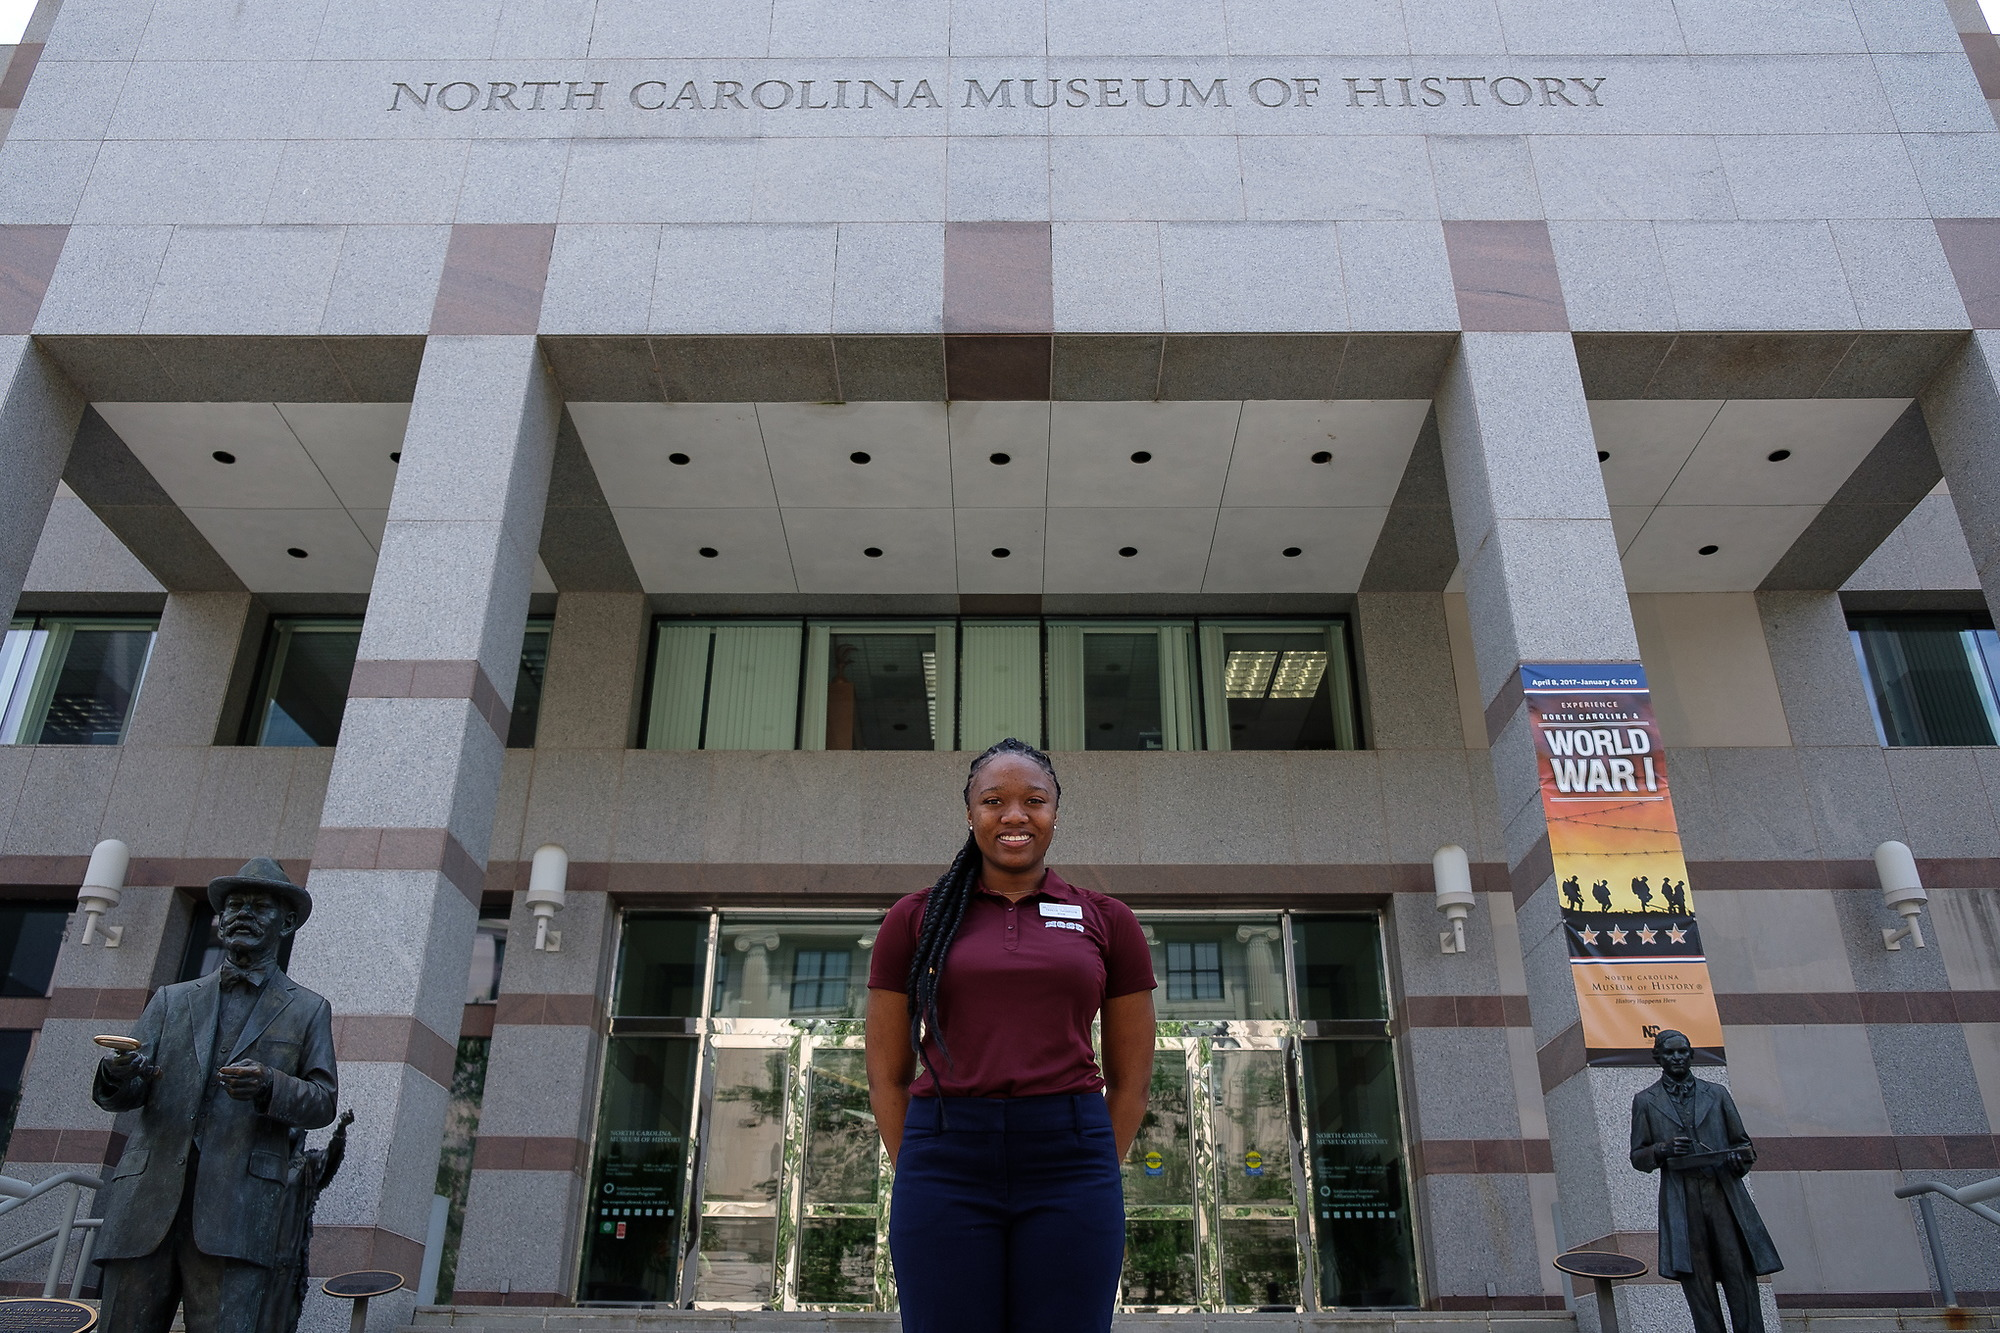 Student is standing in front of History museum